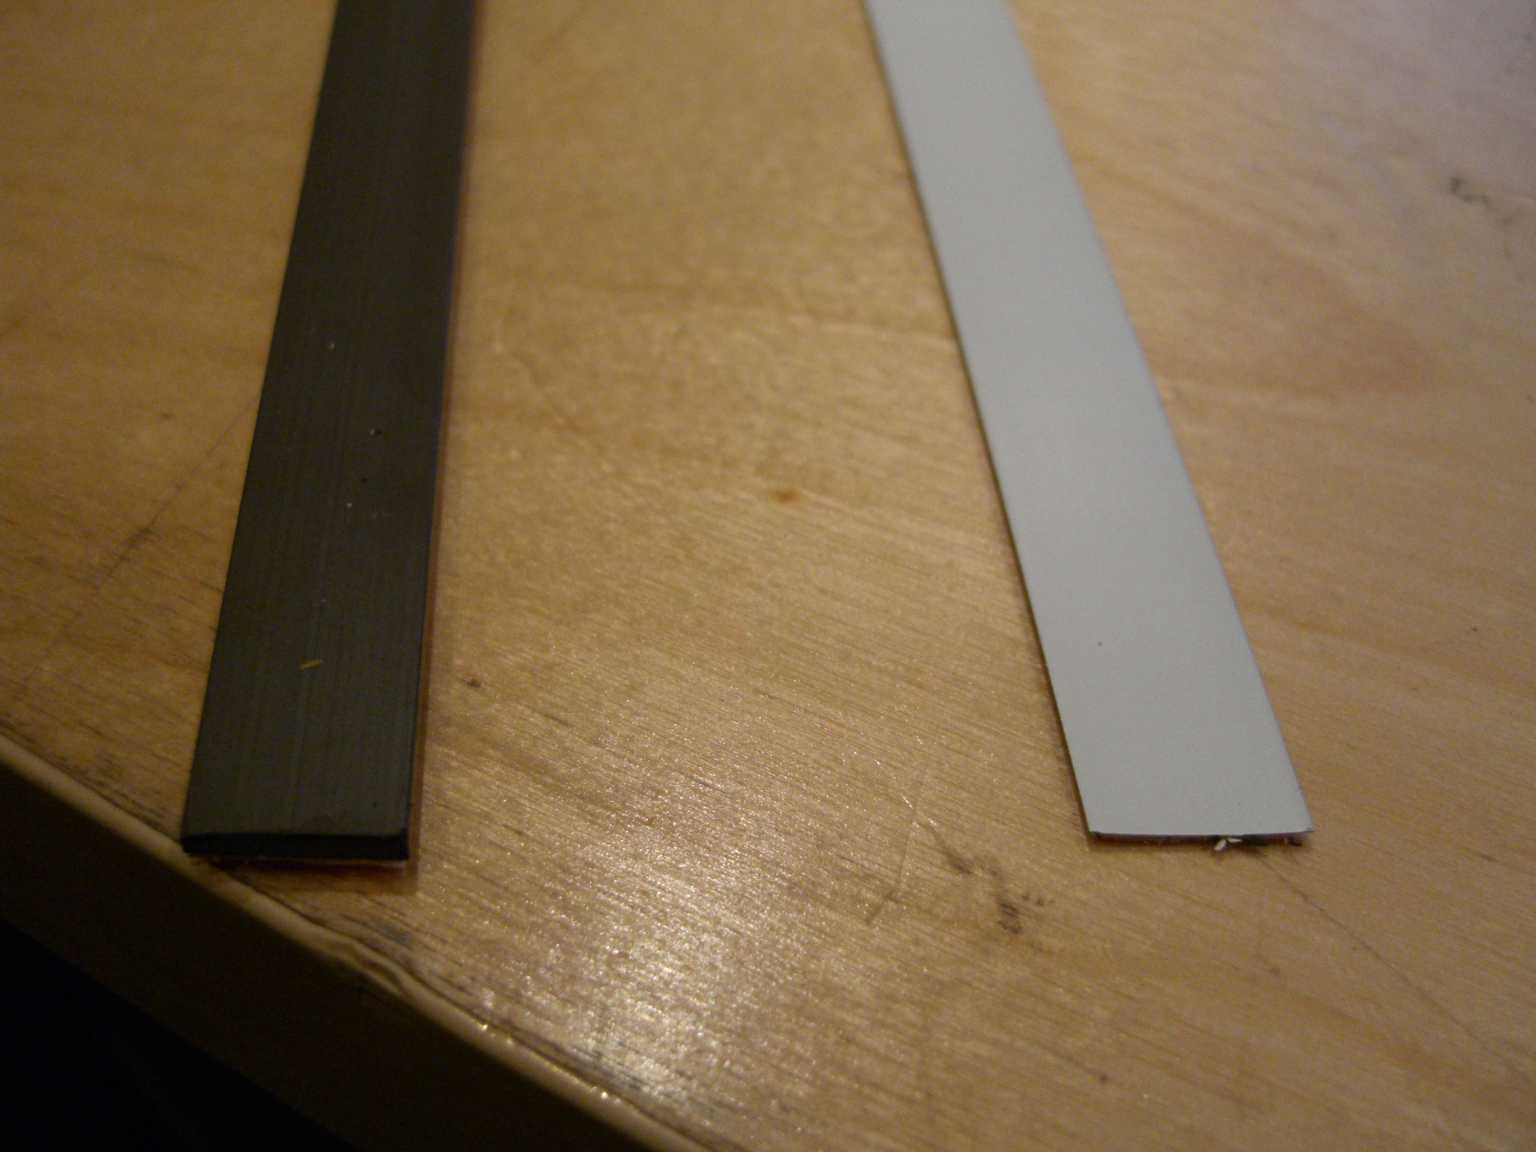 12.5 mm Magnetic tape and Steel tape